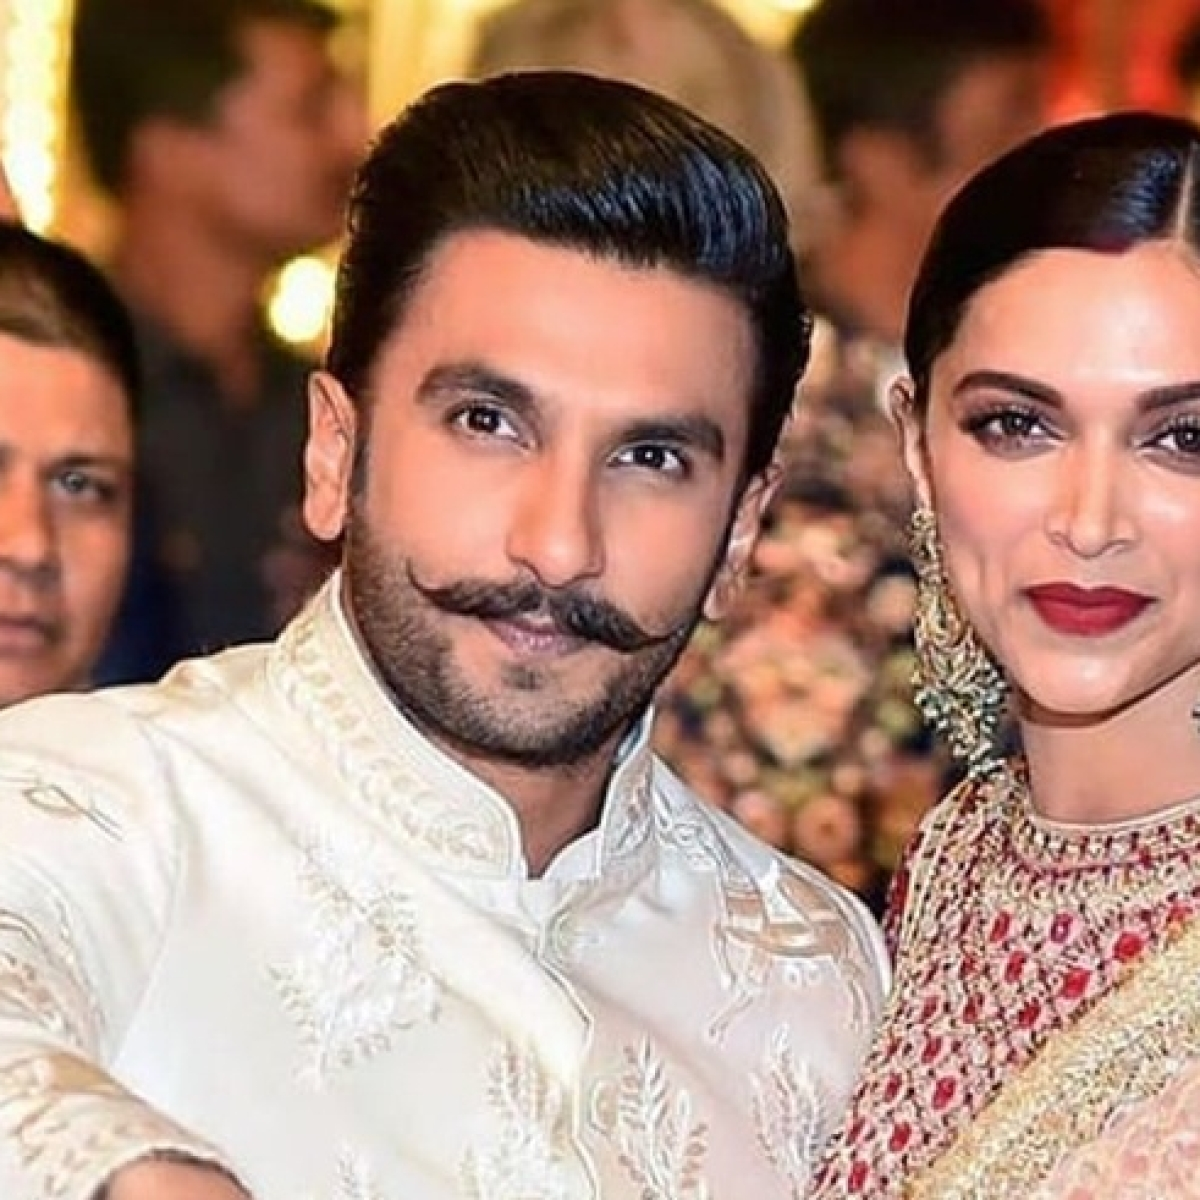 'In times like these, every bit counts': Deepika Padukone, Ranveer Singh pledge support to PM-CARES fund to help India combat coronavirus